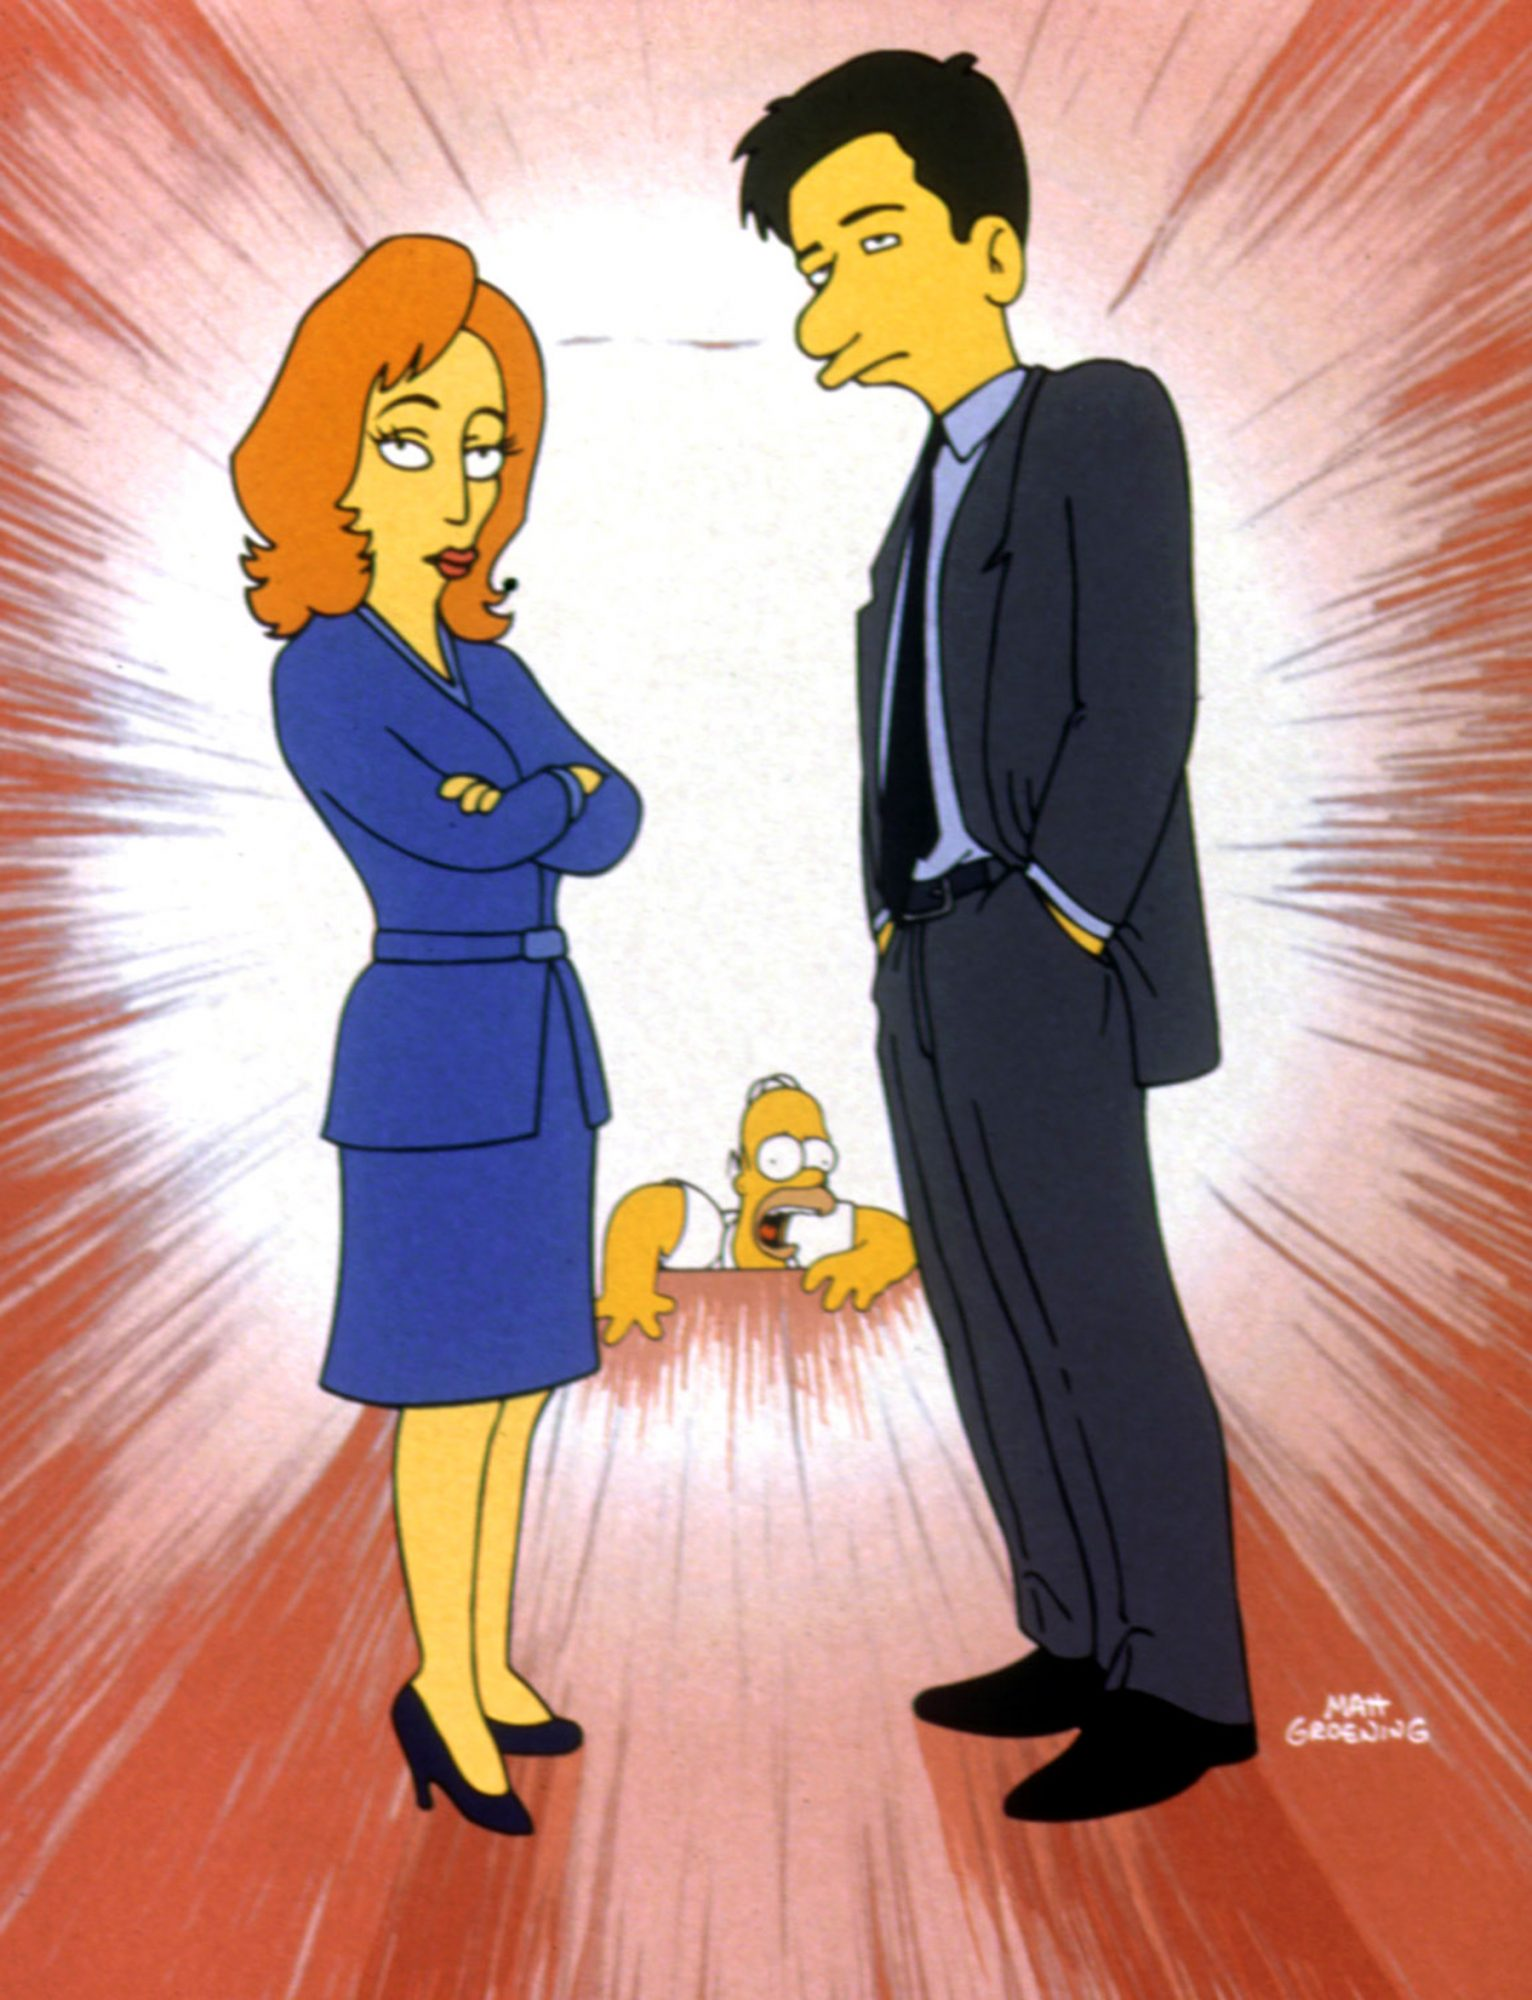 SIMPSONS, THE, Dana Scully, Homer Simpson, Fox Mulder, 1989-. TM and Copyright © 20th Century Fox Fi